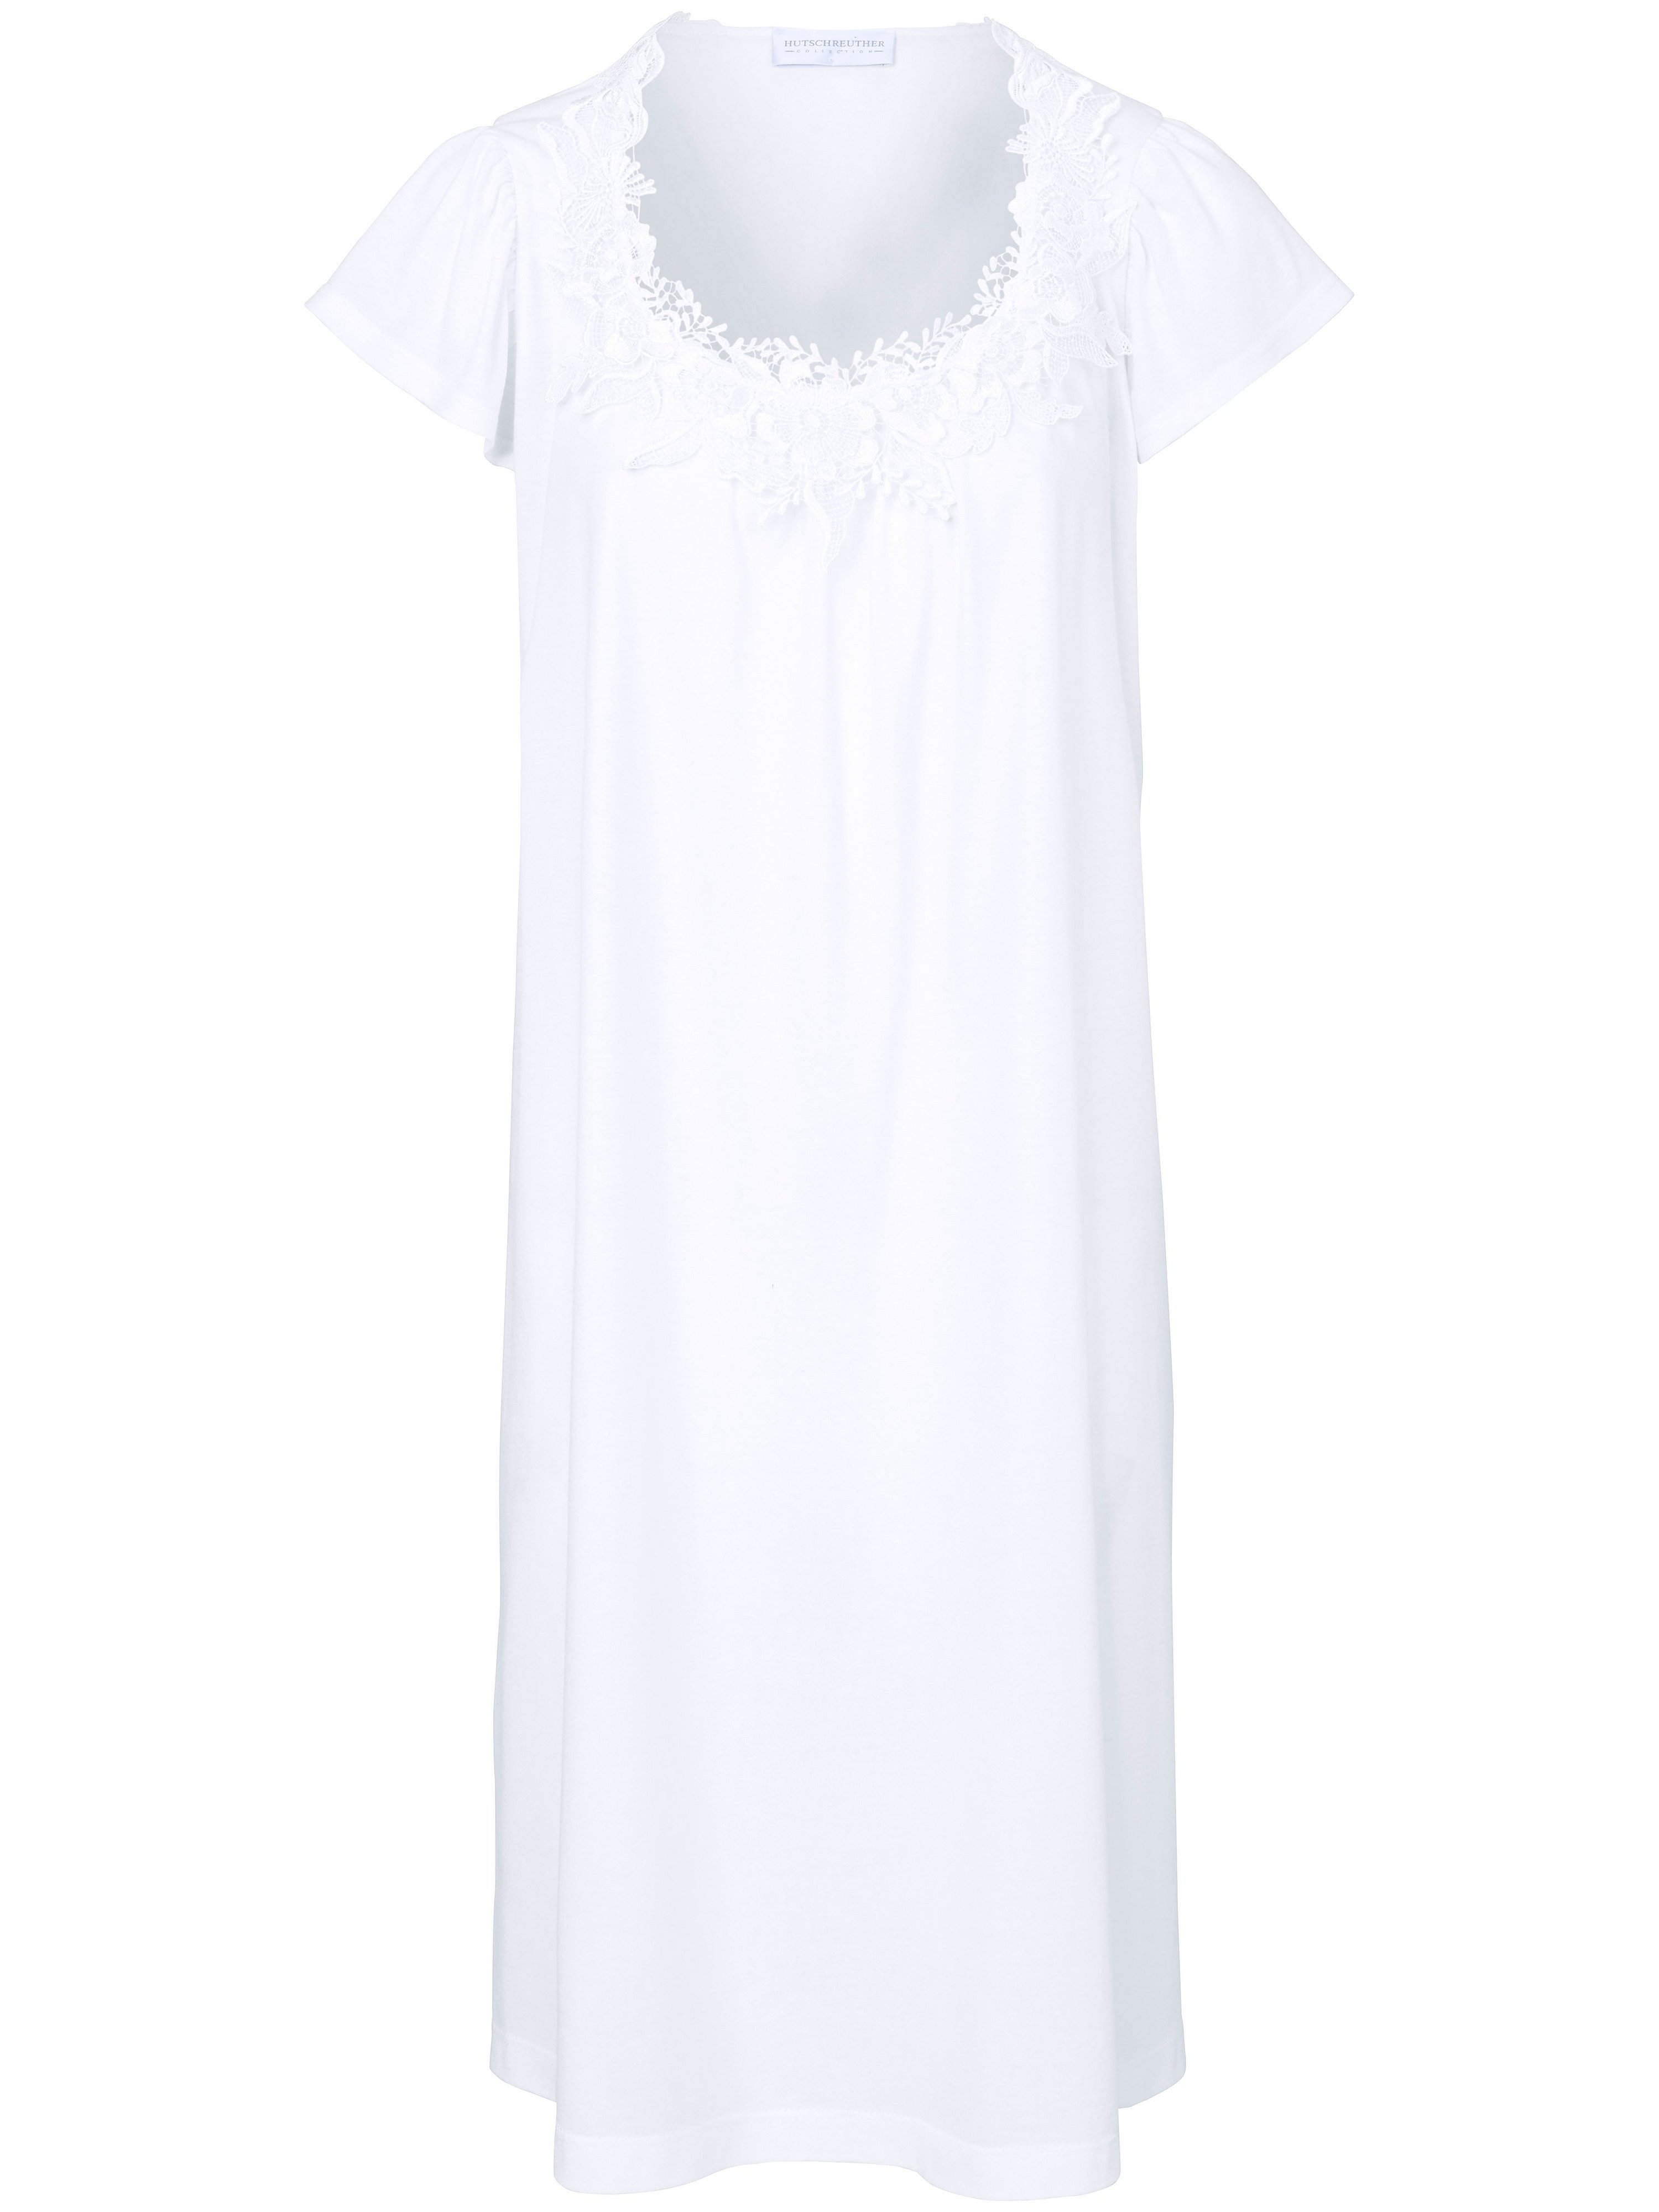 La chemise nuit manches courtes  Hutschreuther blanc taille 54